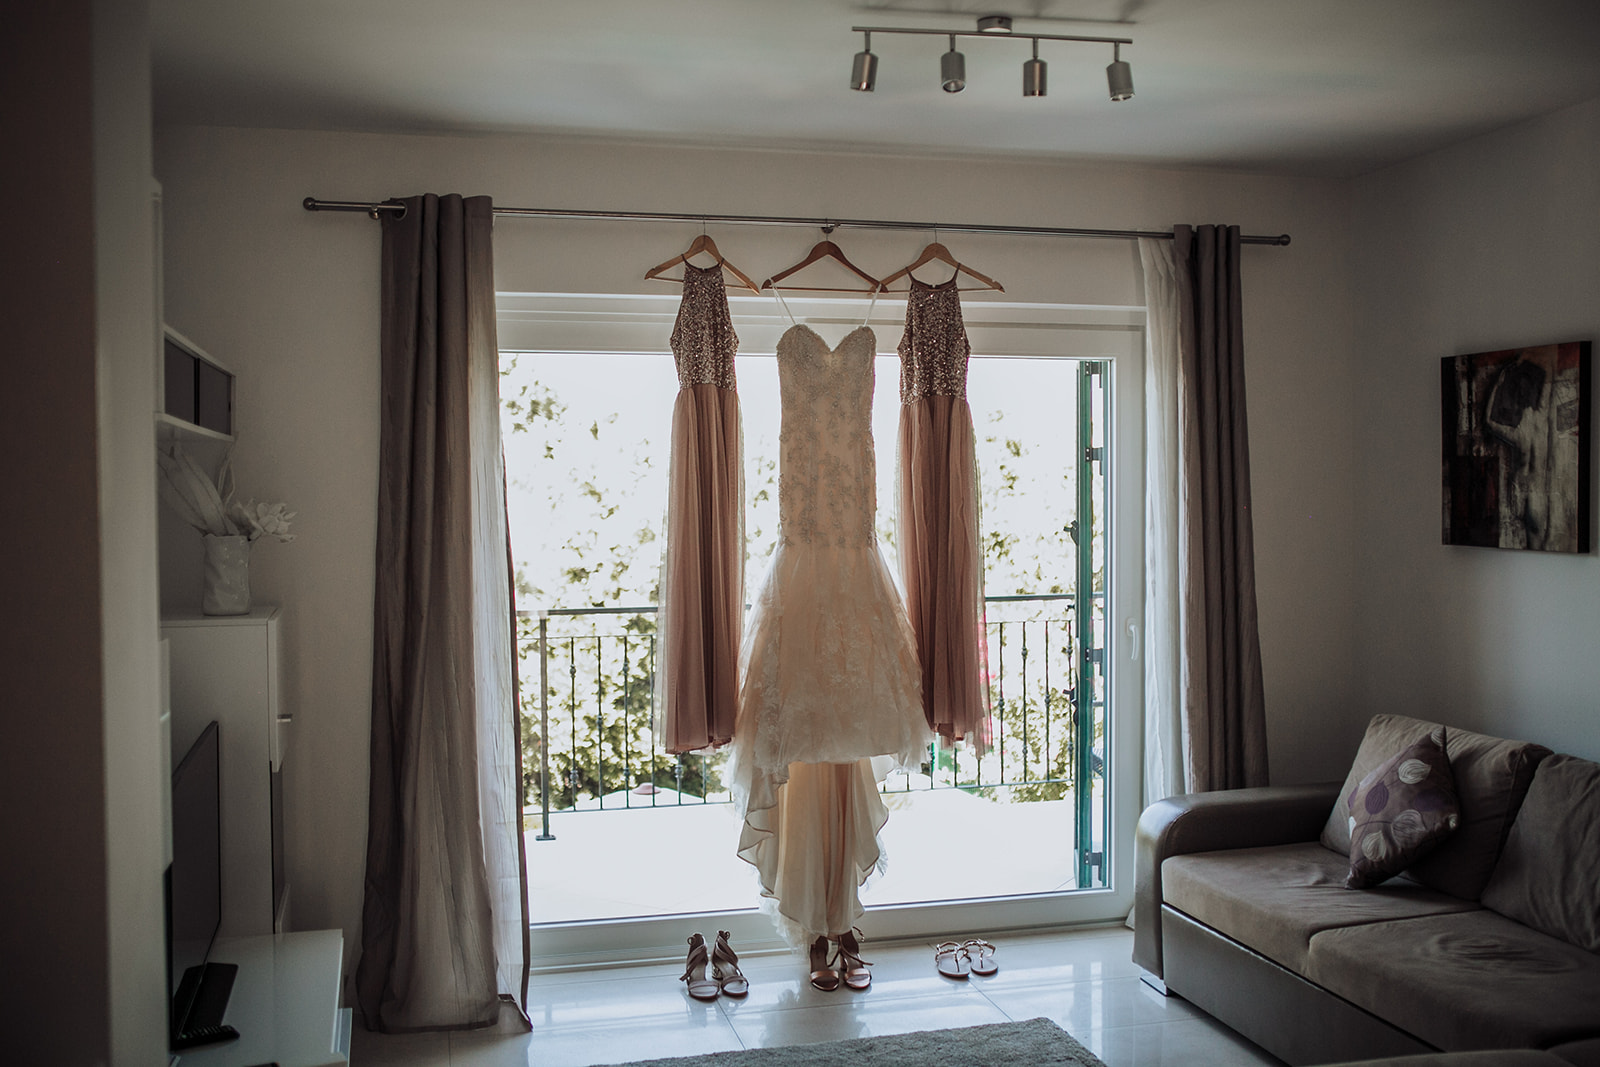 This photo shows the room where the bride and her bridesmaids are getting ready. On the big balcony window we can see her lovely wedding dress hanging surrounded by two pink dresses.